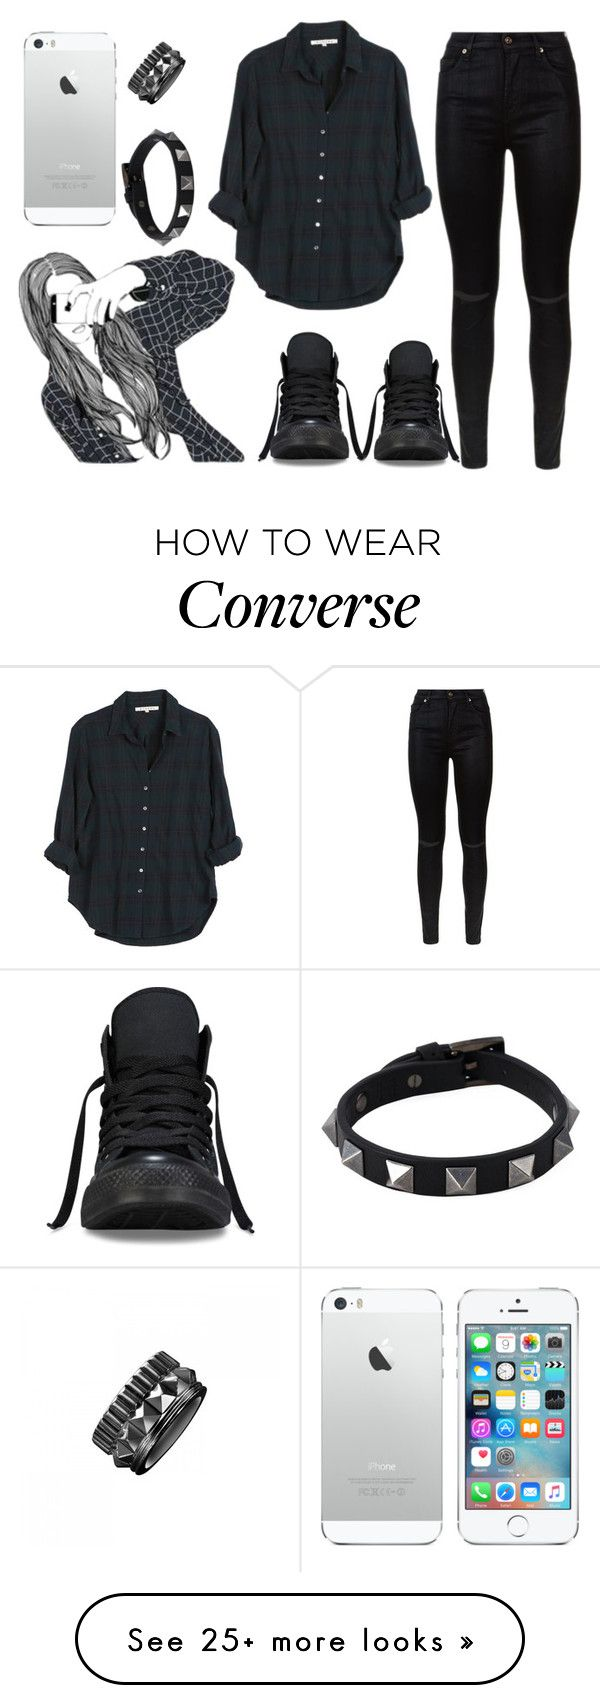 """""""Untitled #156"""" by marleen5marleen on Polyvore featuring moda, 7 For All Mankind, Xirena, Waterford, Valentino y Converse Más"""